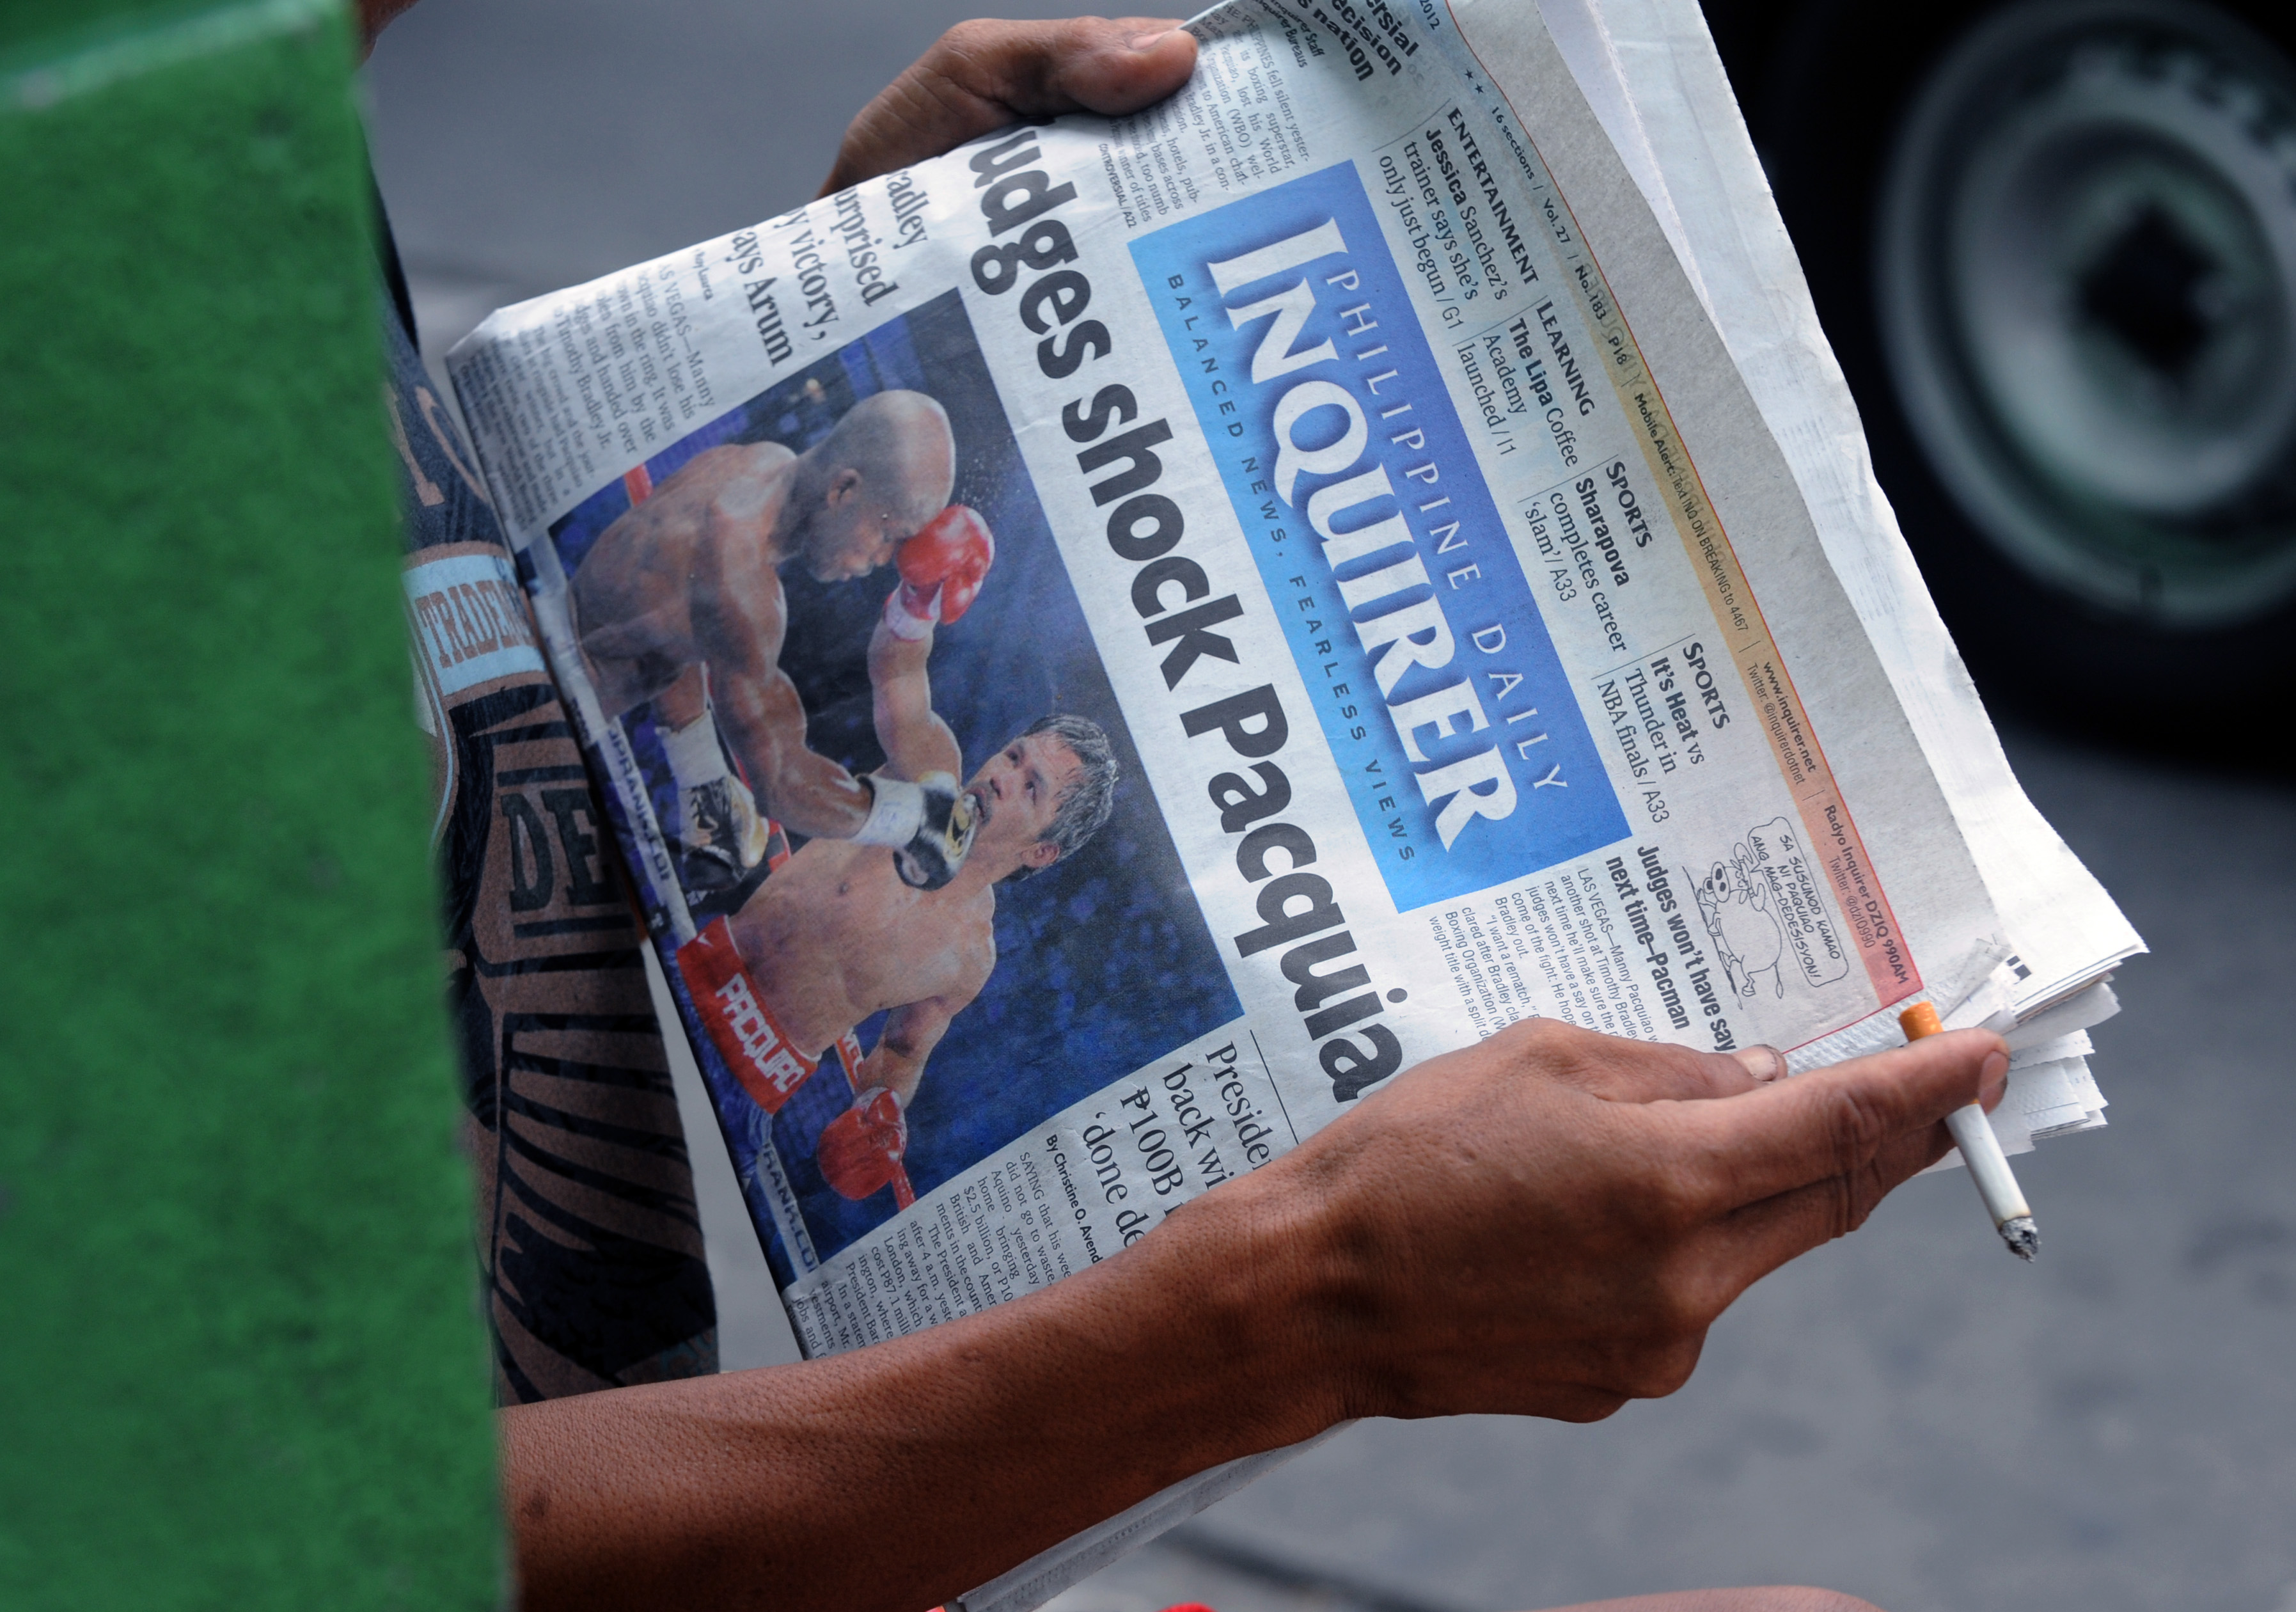 A Philipines newspaper shows Manny Pacquiao's controversial defeat to Timothy Bradley. (Getty Images)